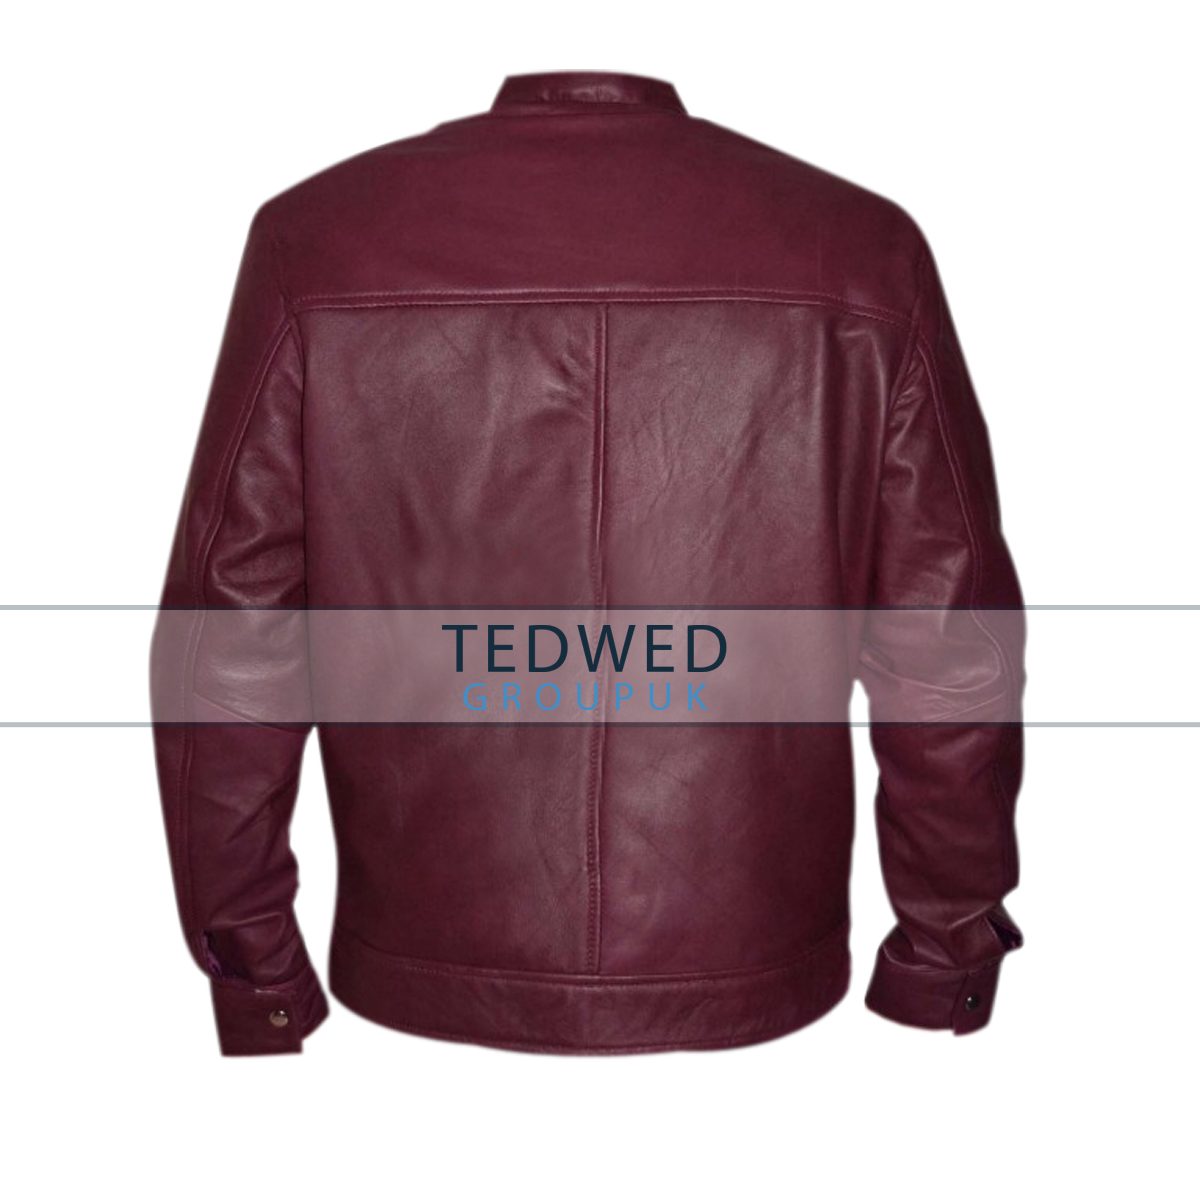 Vin Diesel Fast And Furious 7 Brown Jacket Tedwed